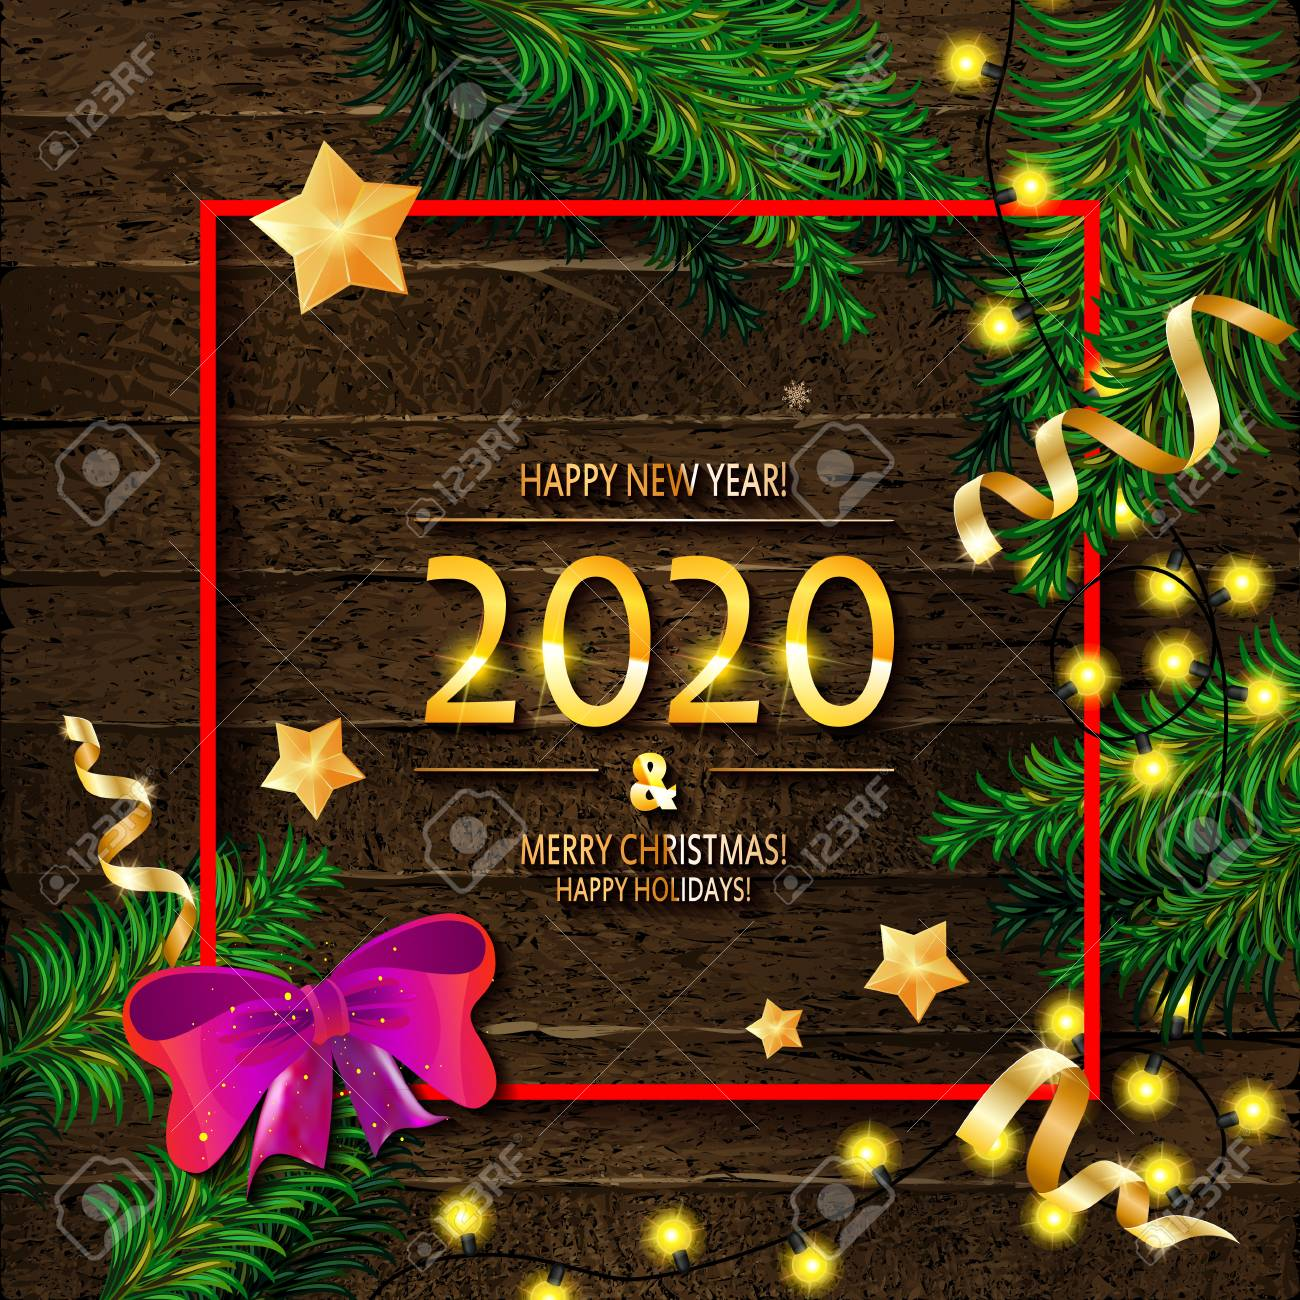 Red Frames 2020 Christmas Picture Frames 2020 Happy New Year And Merry Christmas Frame With Snow And Real